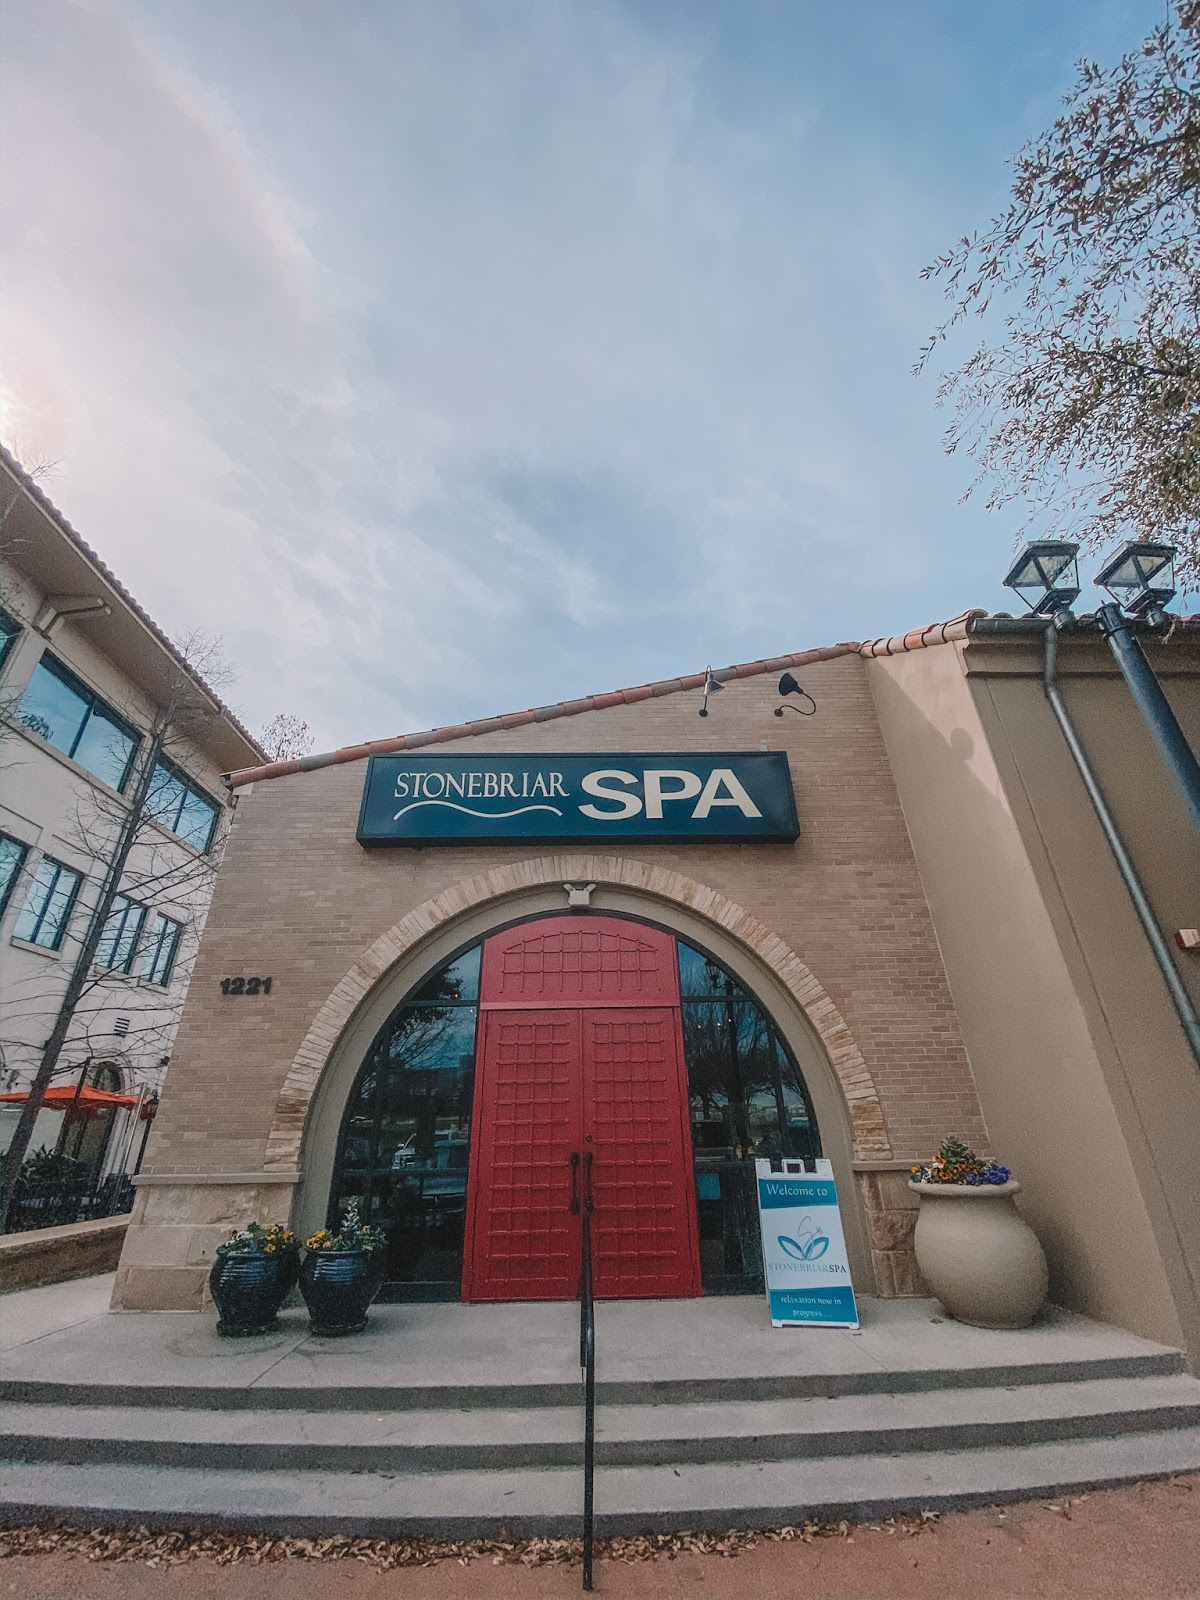 the Stonebriar Spa in Frisco, Texas, is the place to be for relaxation and pampering